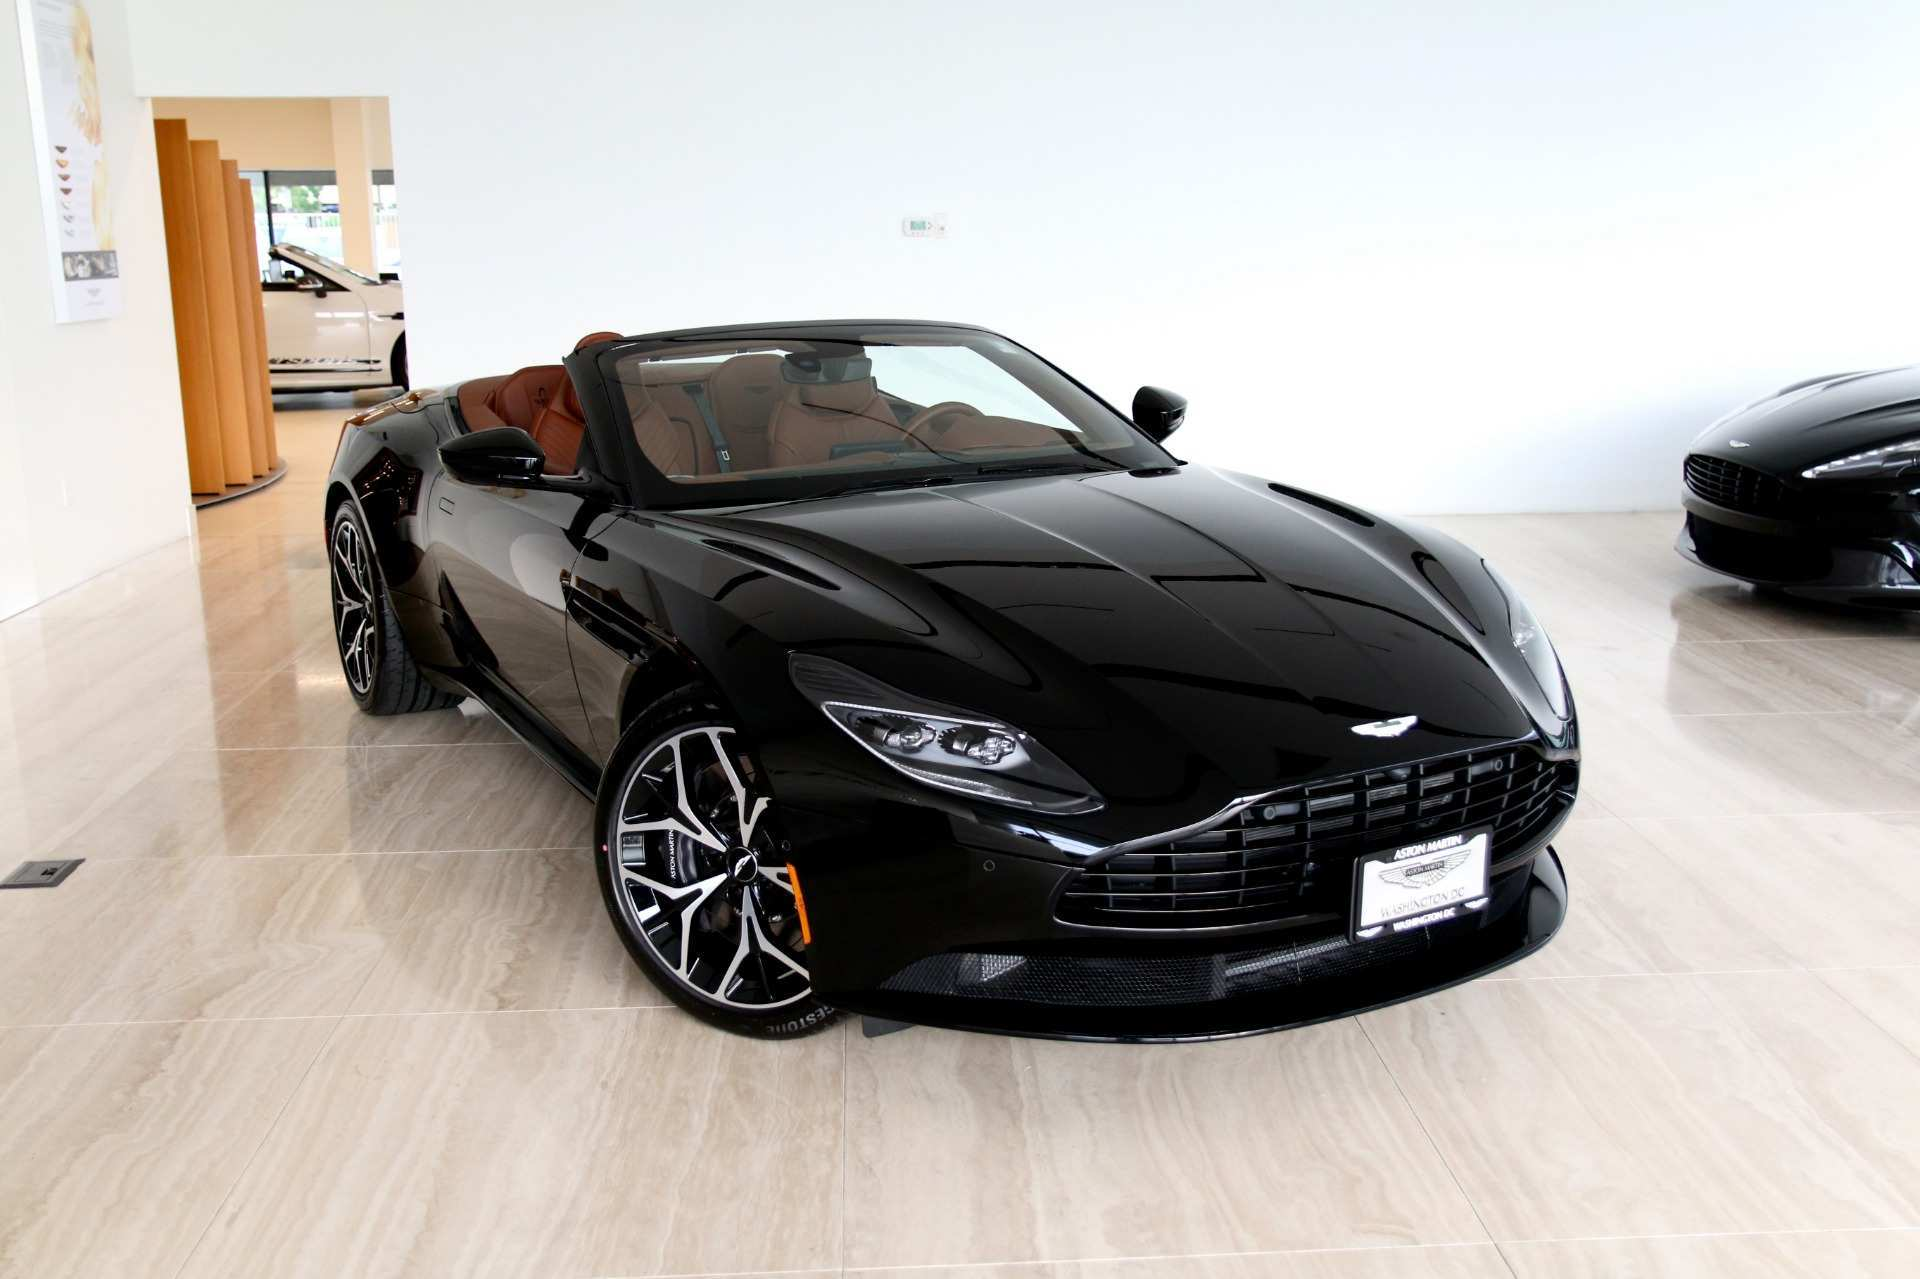 69 All New 2019 Aston Martin Db11 Volante Review by 2019 Aston Martin Db11 Volante